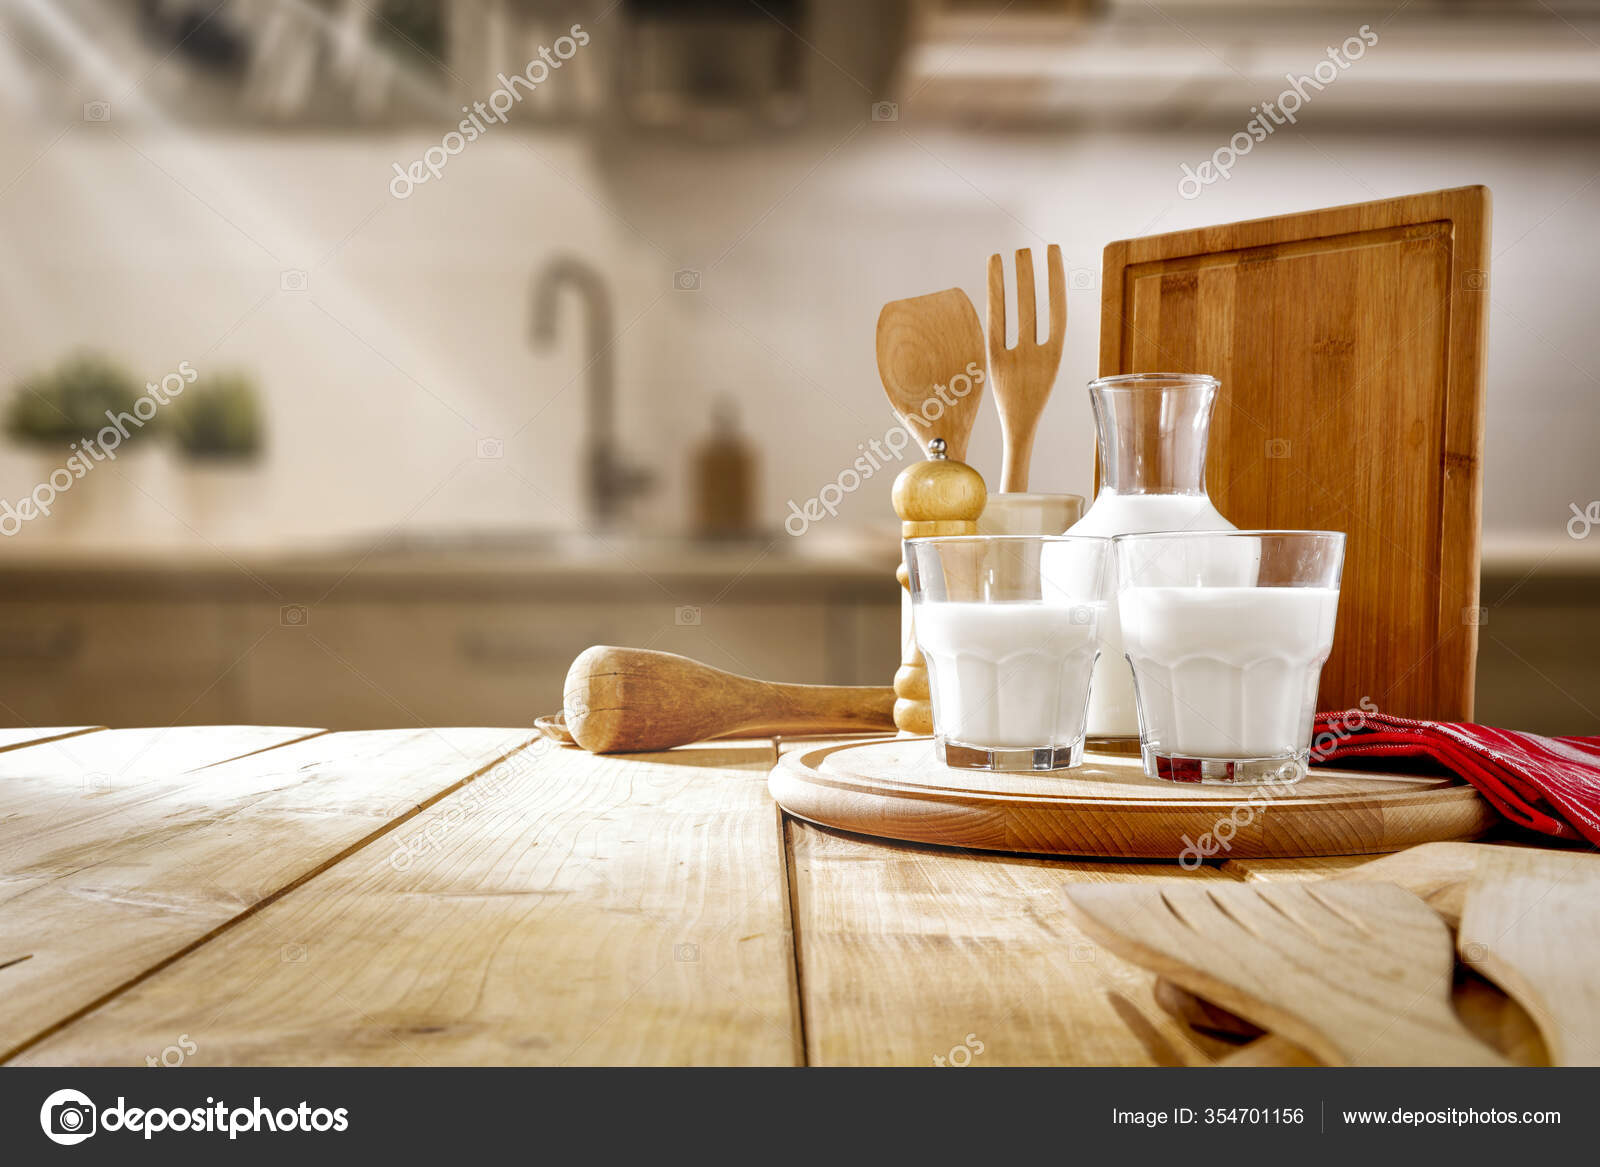 Wooden table top with kitchen background. Nice kitchen interior. 9